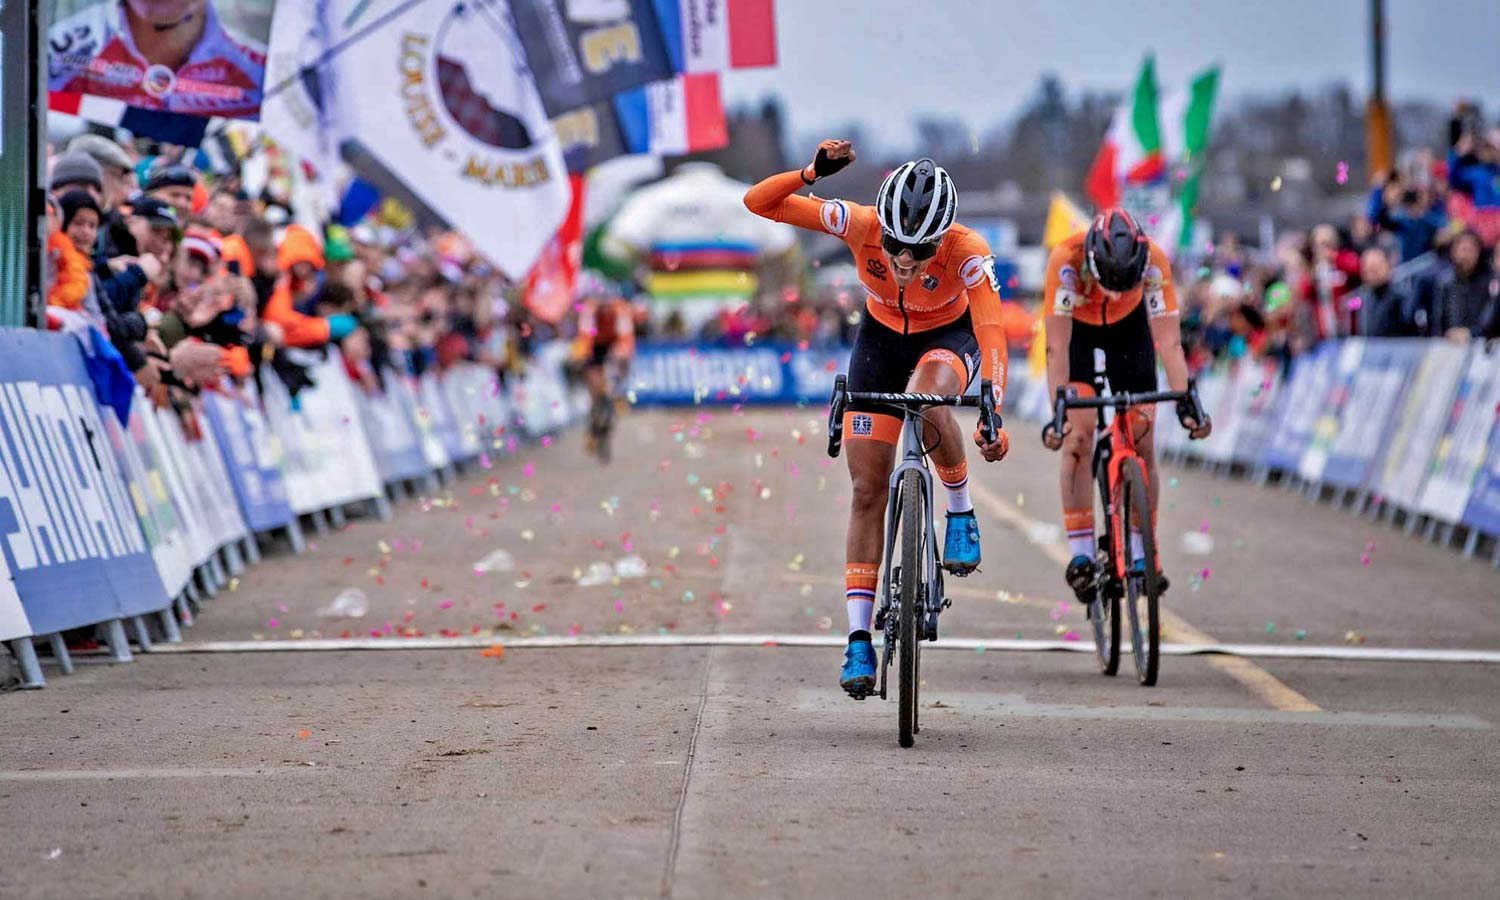 2021 Canyon Inflite carbon or aluminum alloy cyclocross bikes, affordable race-ready cross bikes of elite World Champions